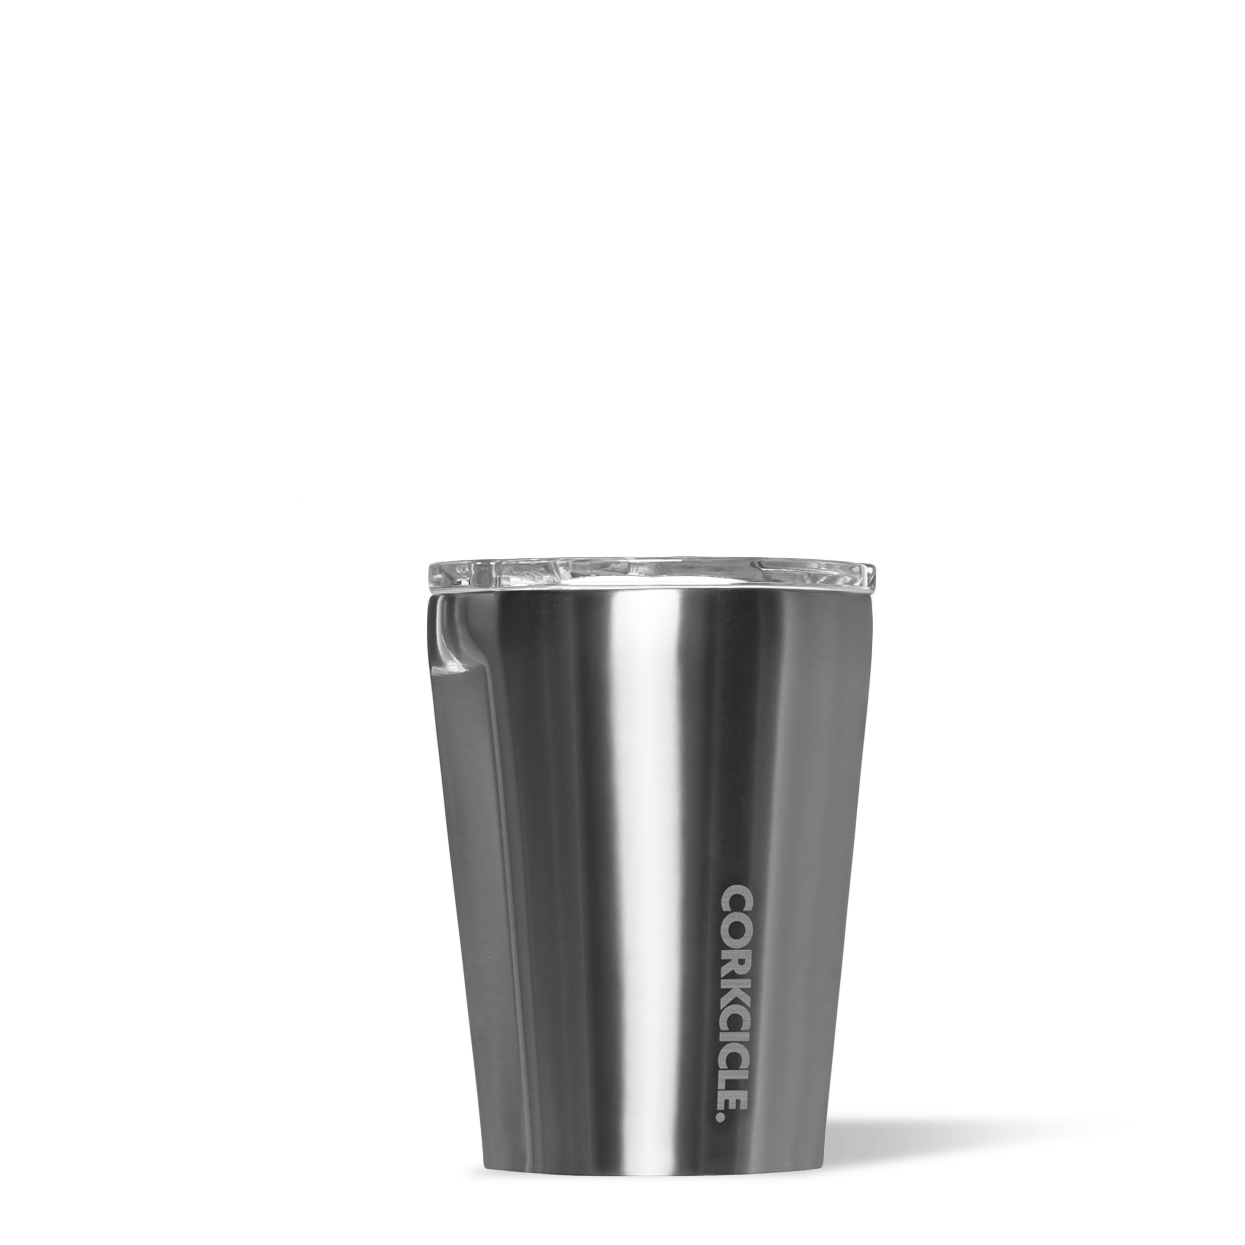 Corkcicle 12oz Gunmetal Metallic Tumbler Side View.